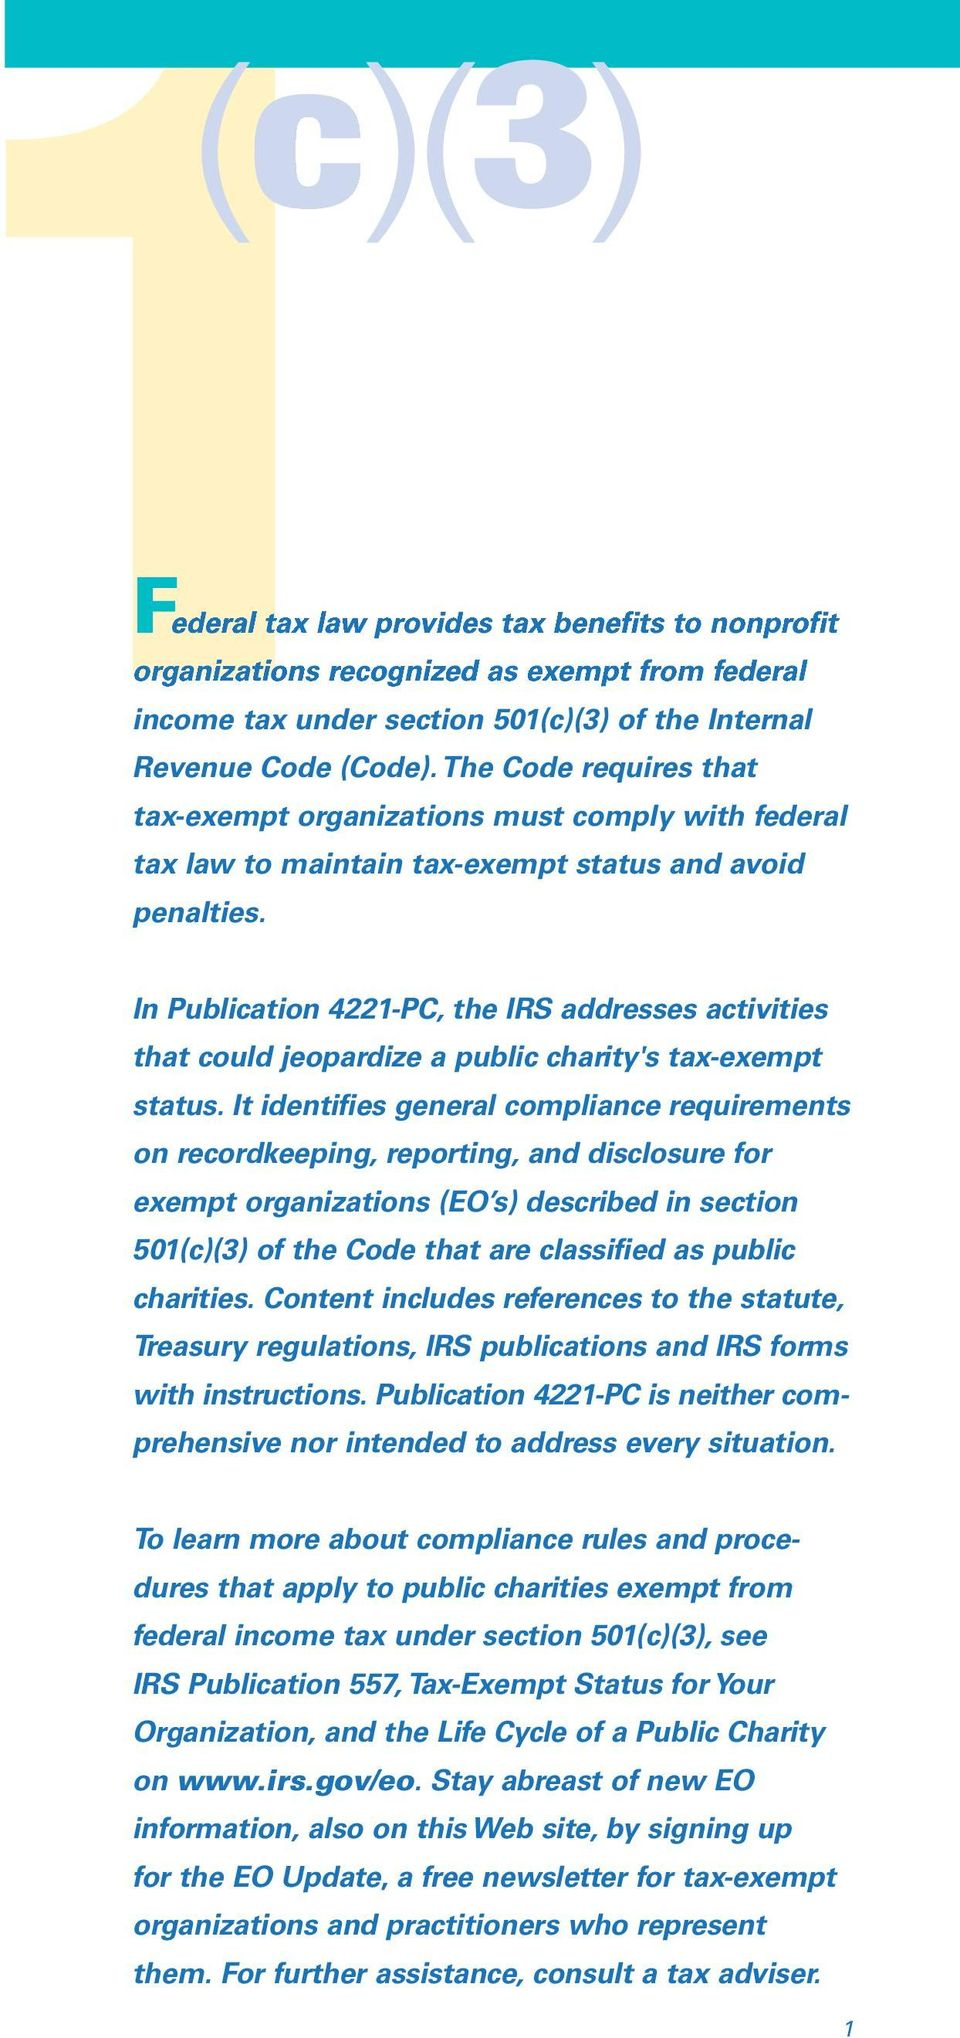 In Publication 4221-PC, the IRS addresses activities that could jeopardize a public charity's tax-exempt status.